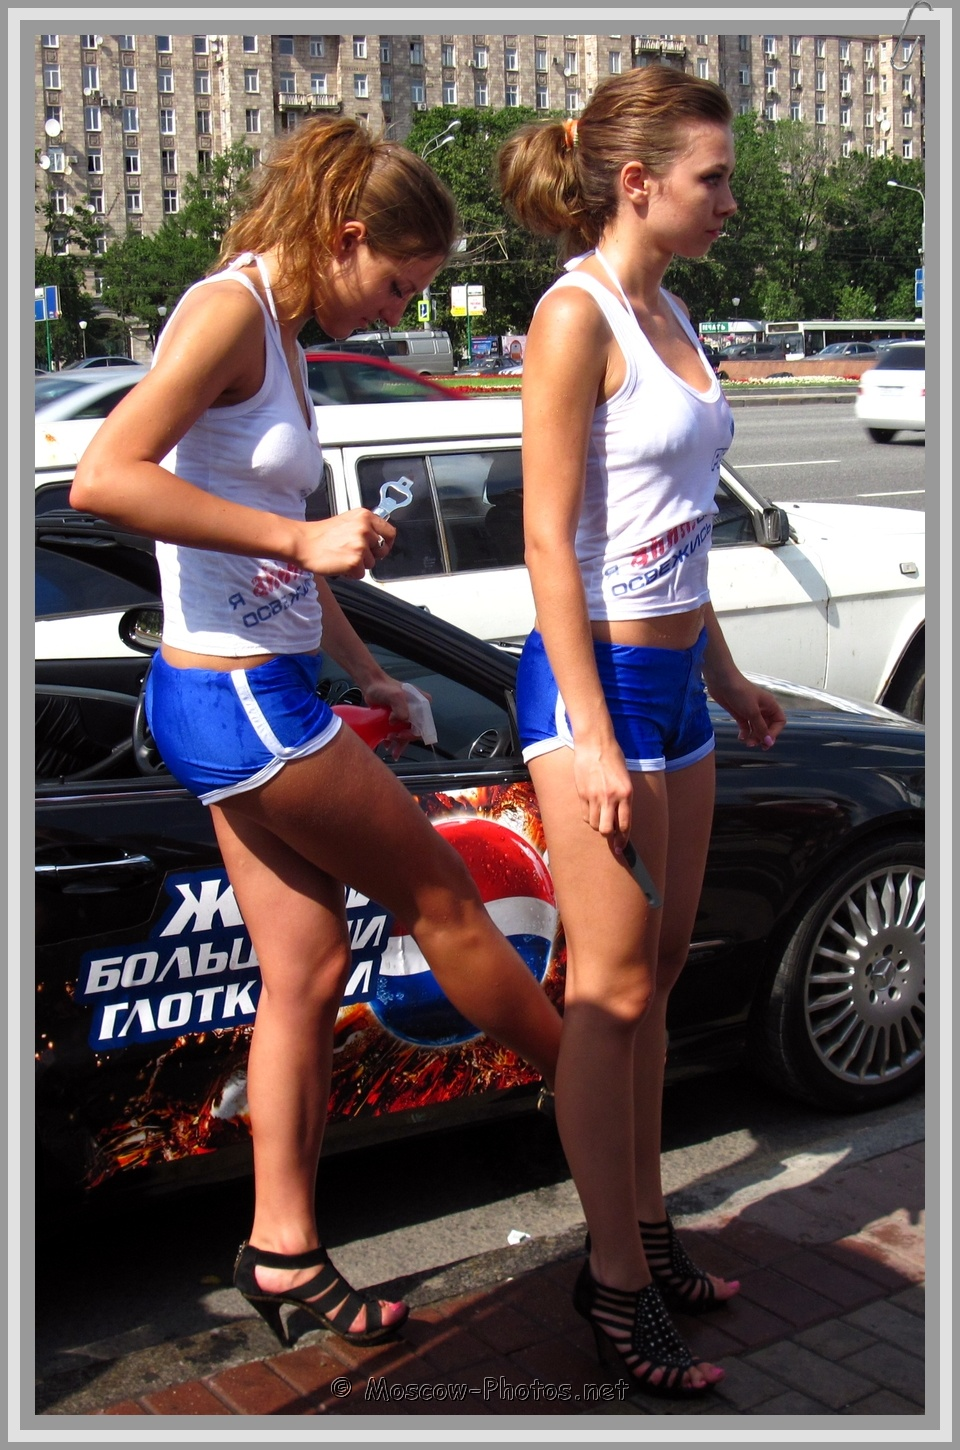 High Heels Pepsi Girls